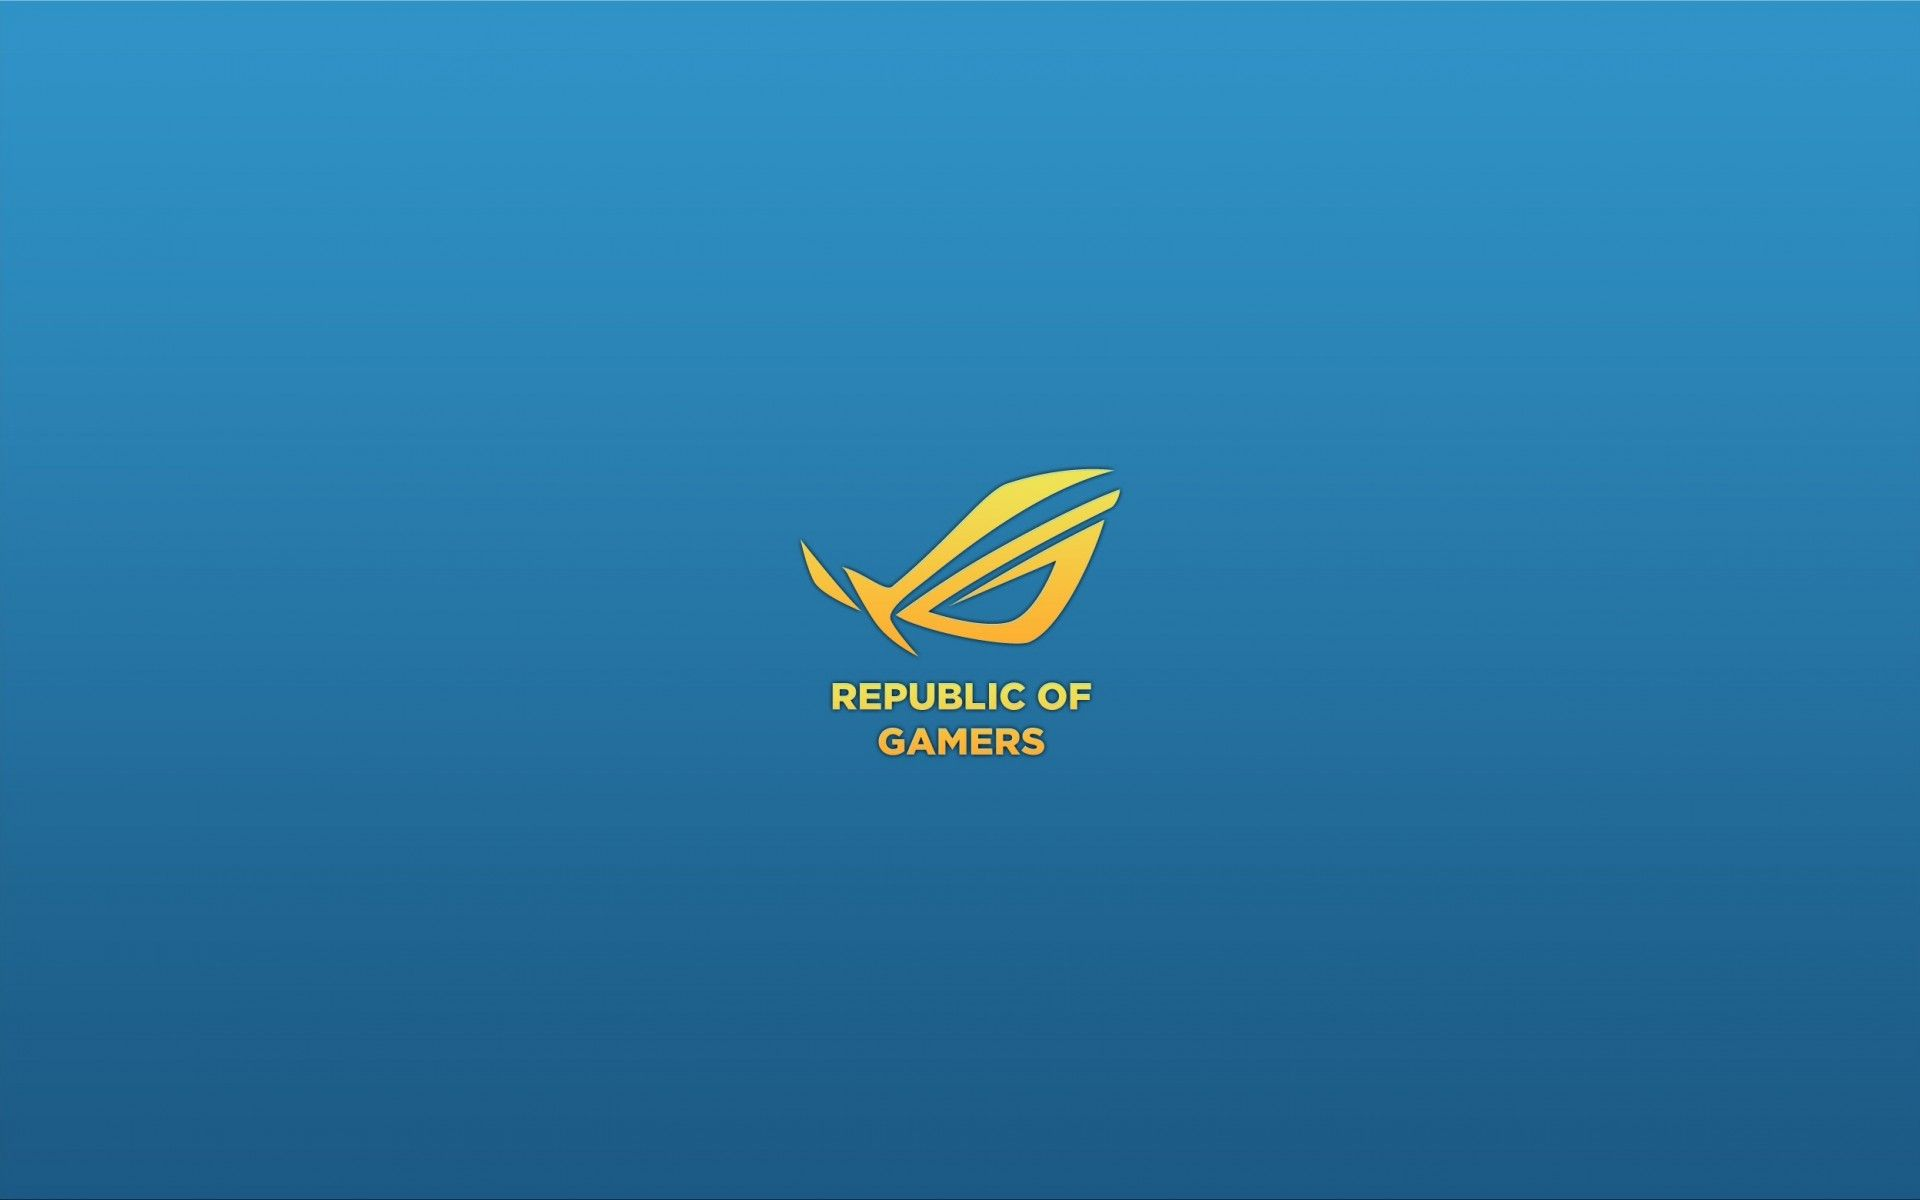 Blue and yellow asus rog wallpaper wallpapers in 2019 - Asus x series wallpaper hd ...